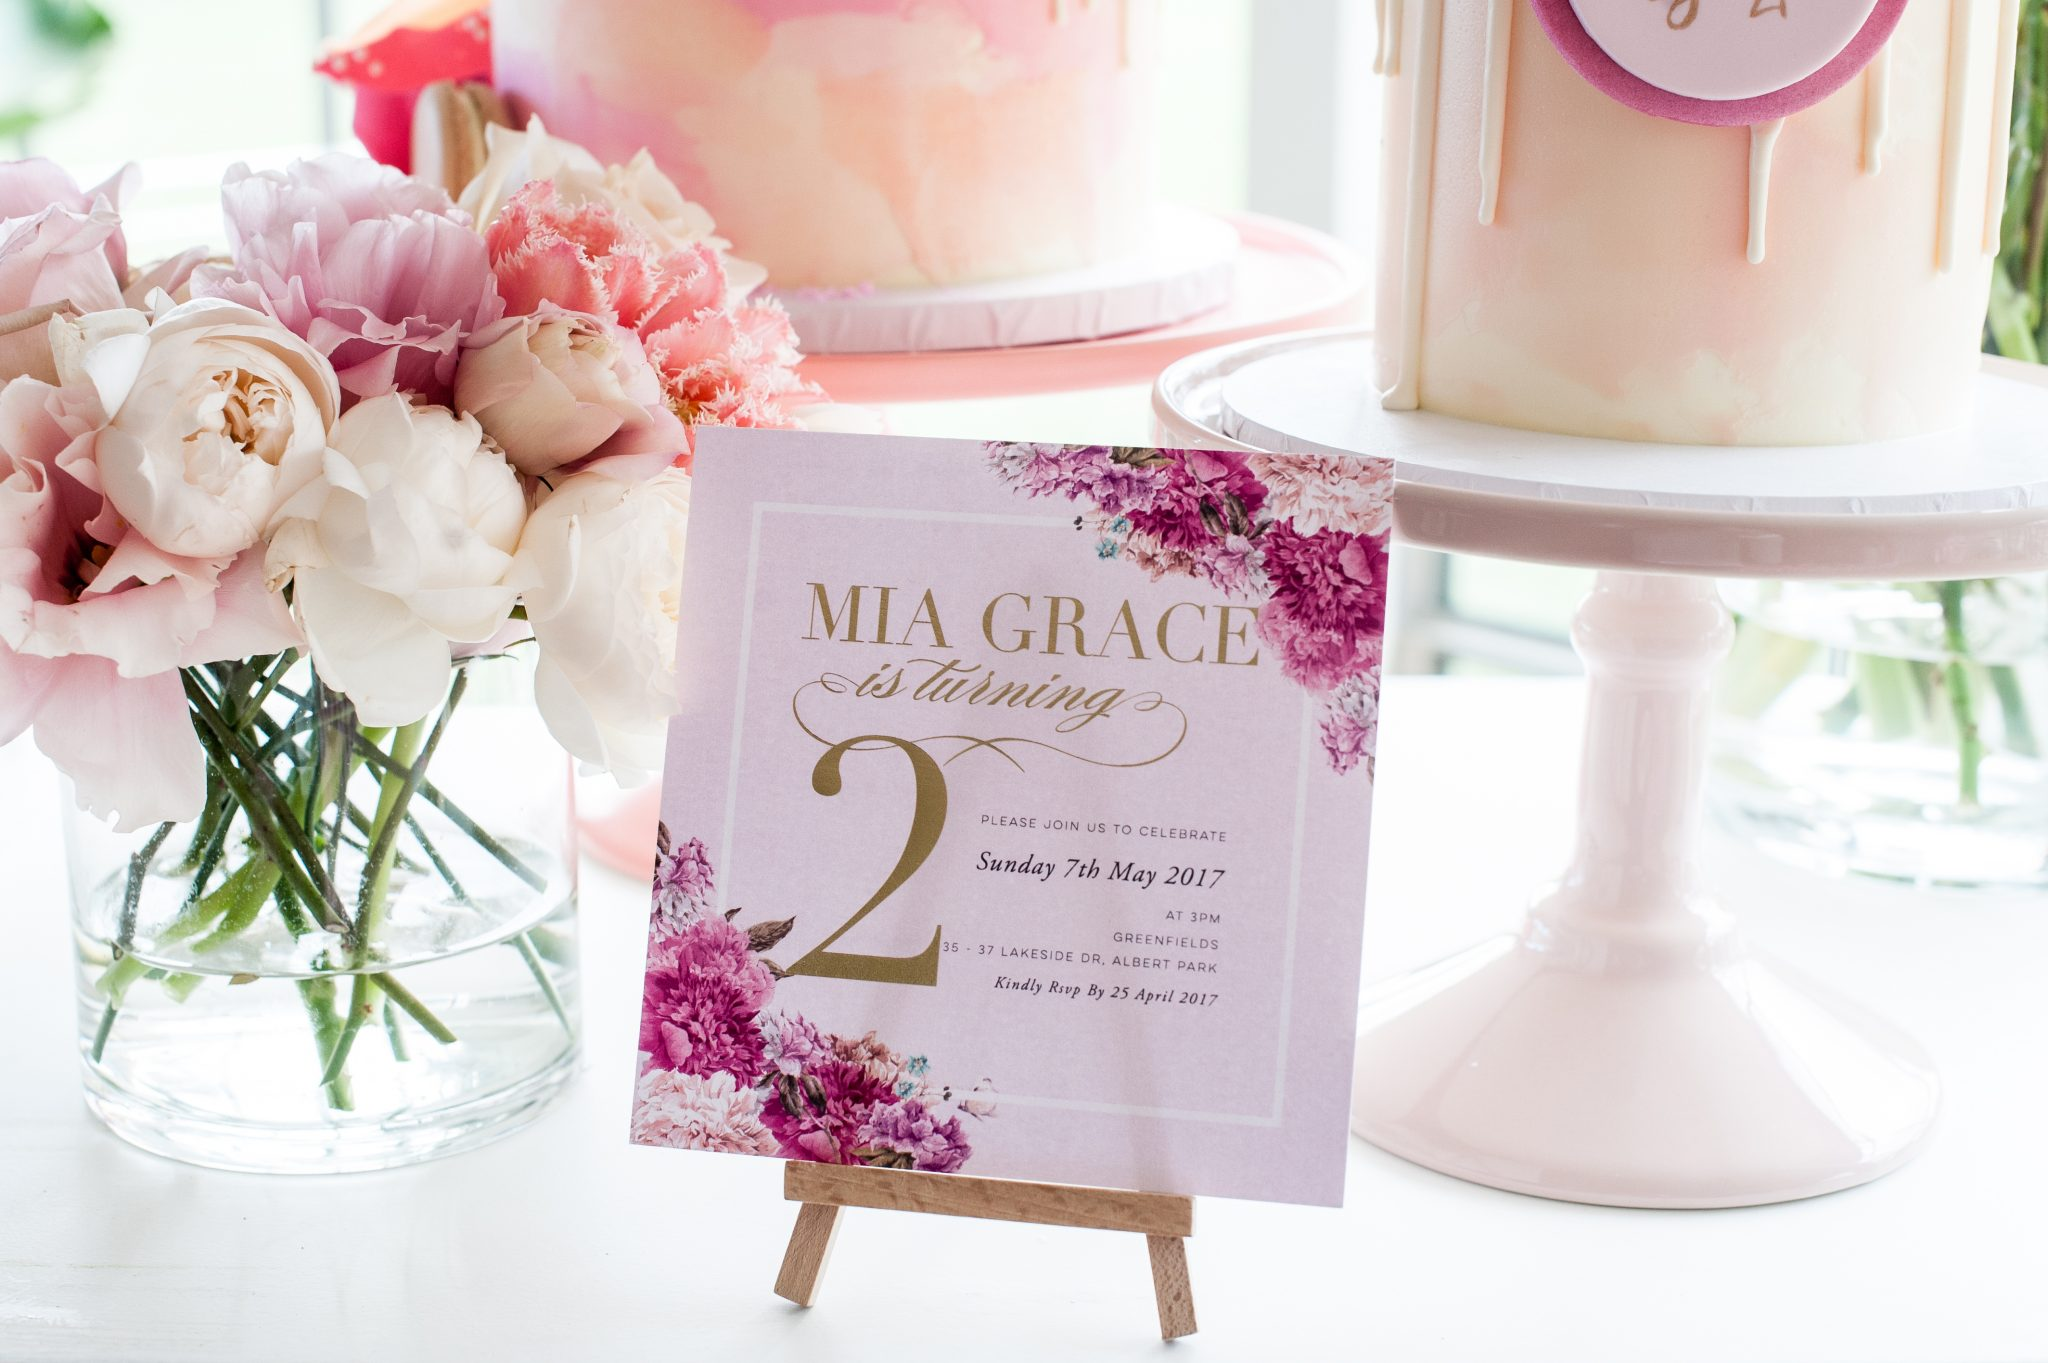 SARAH JANE YOUNG, ATLANTIC GROUP, PEPPA PIG PARTY, SHEISSARAHJANE, GREENFIELDS